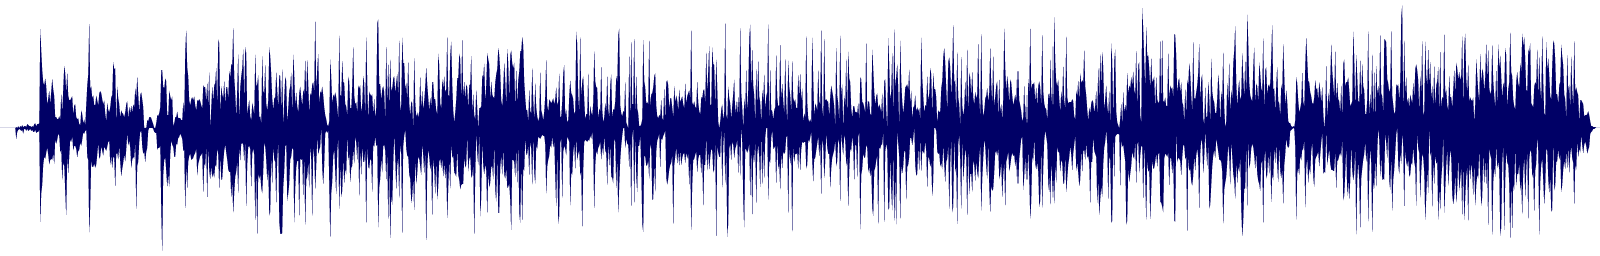 waveform of track #106366